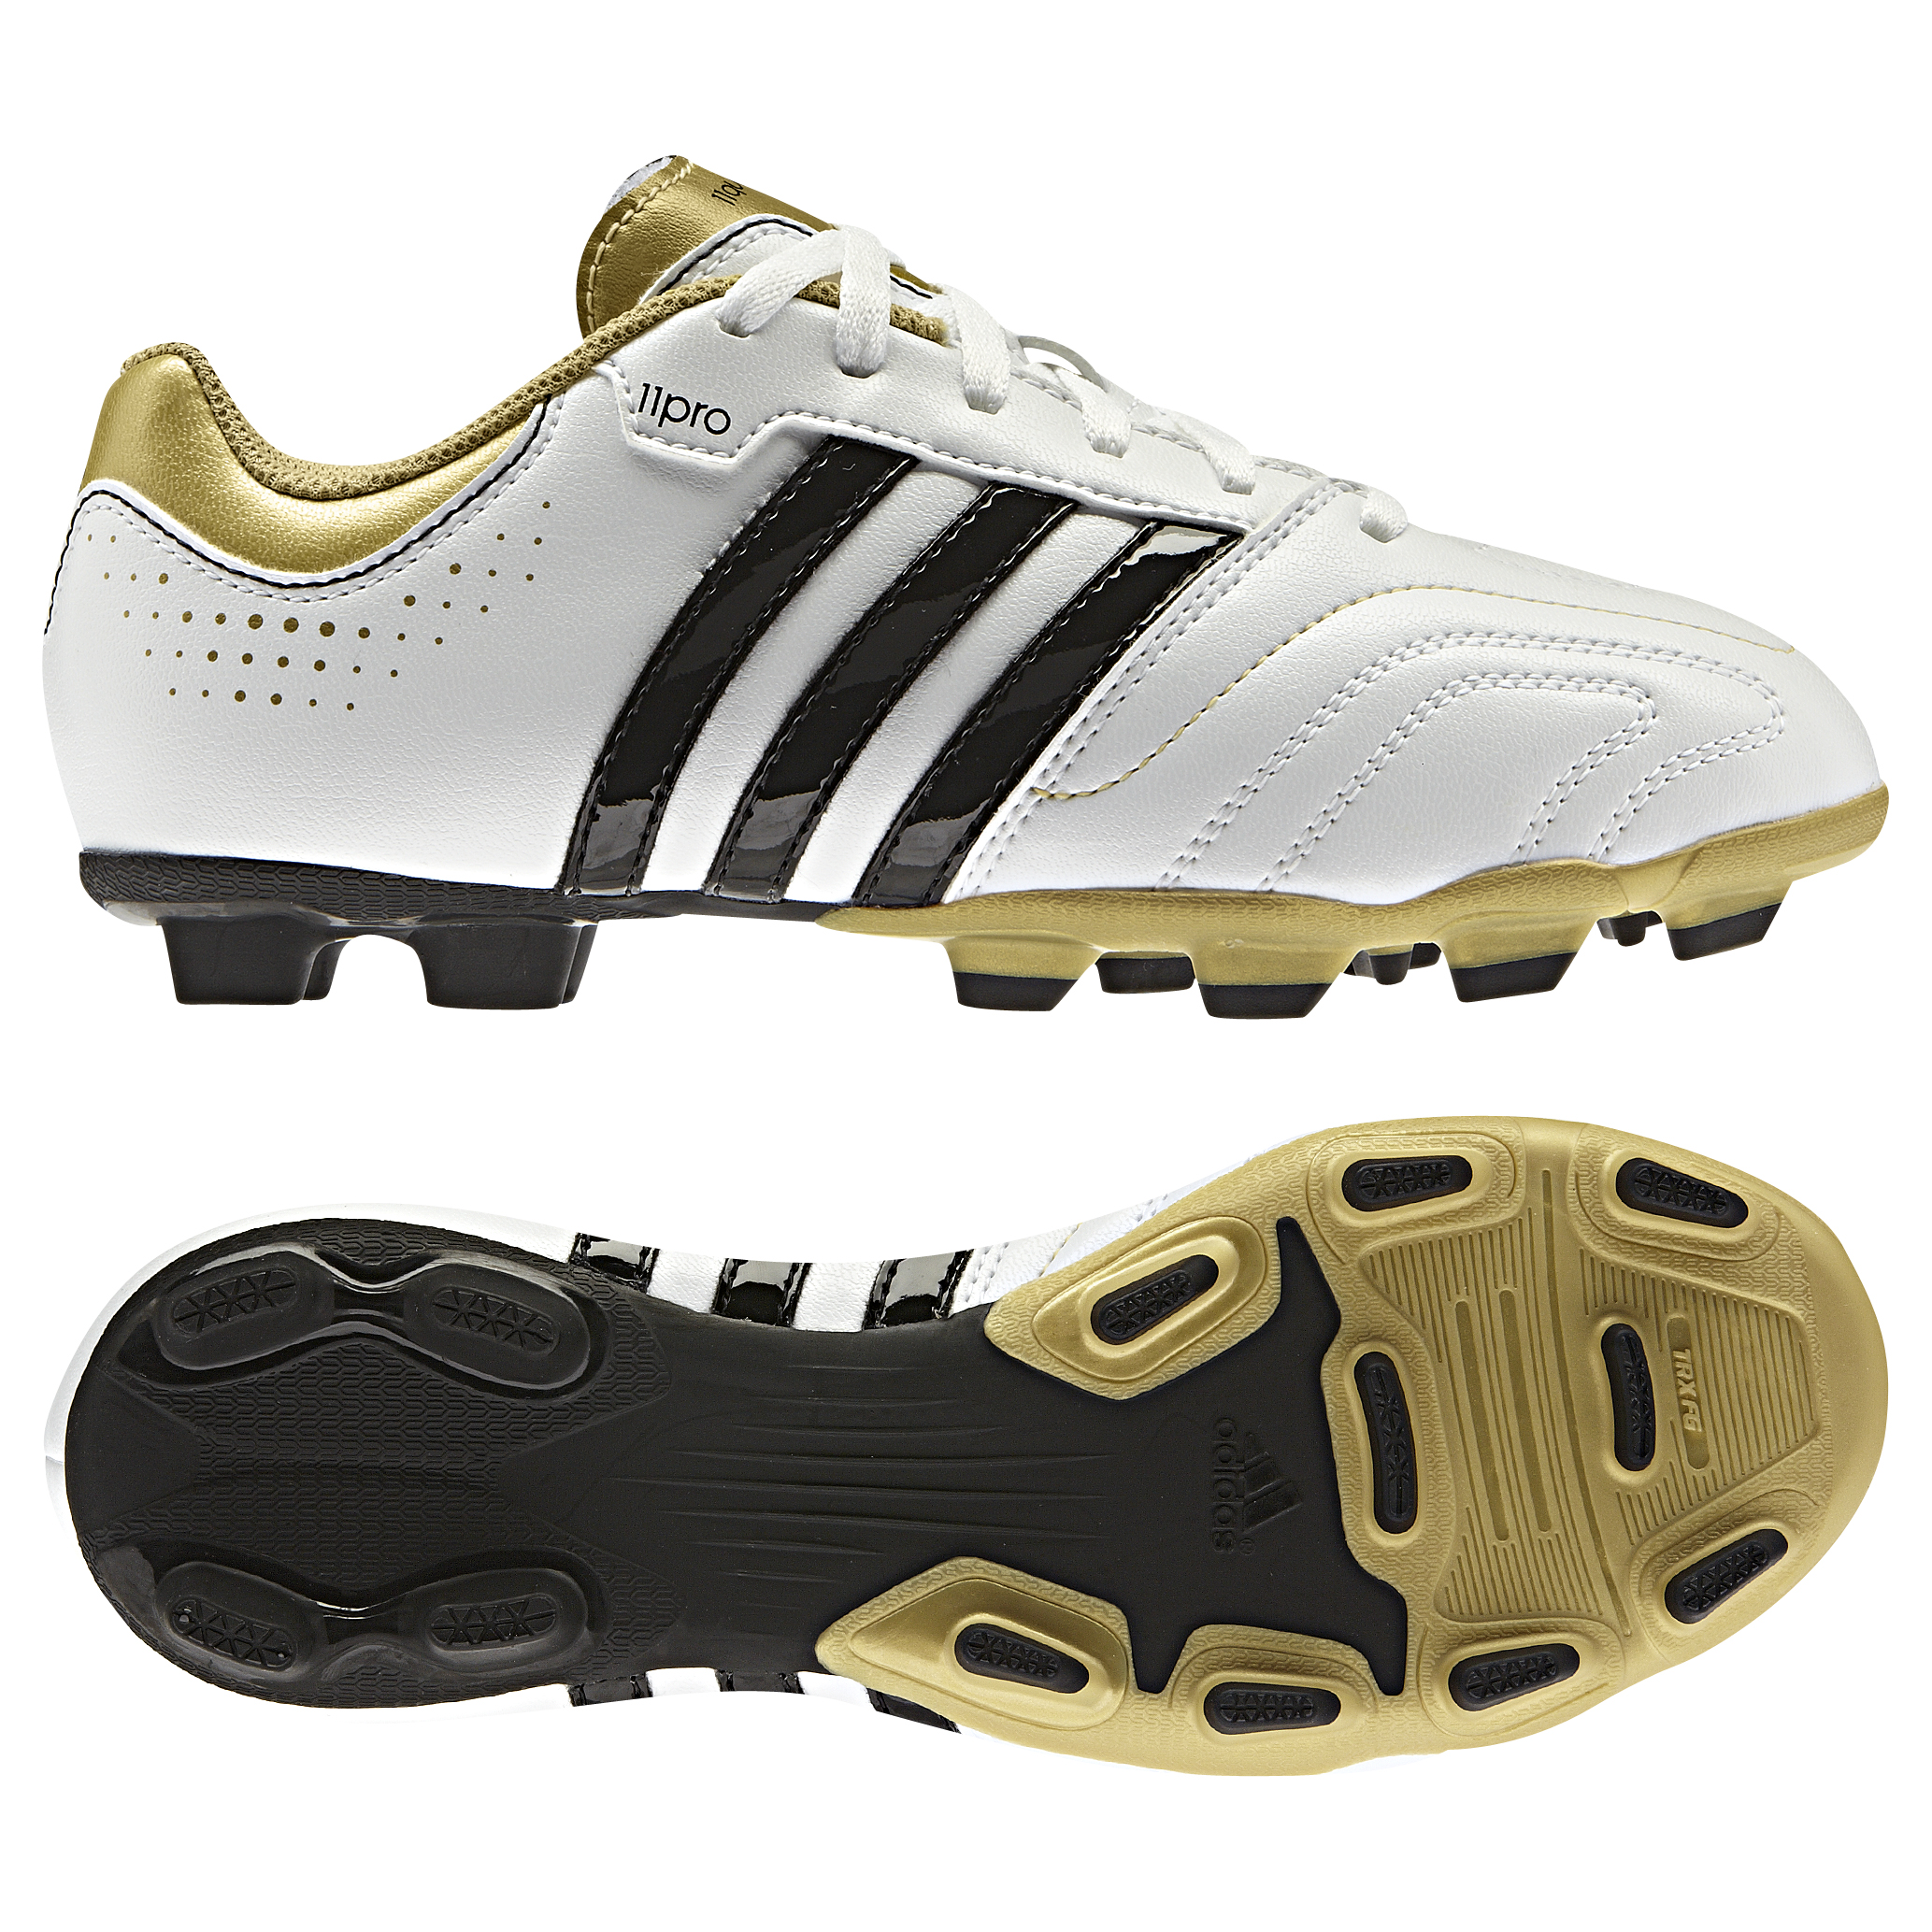 Adidas 11Questra TRX Firm Ground Football Boots - kids White